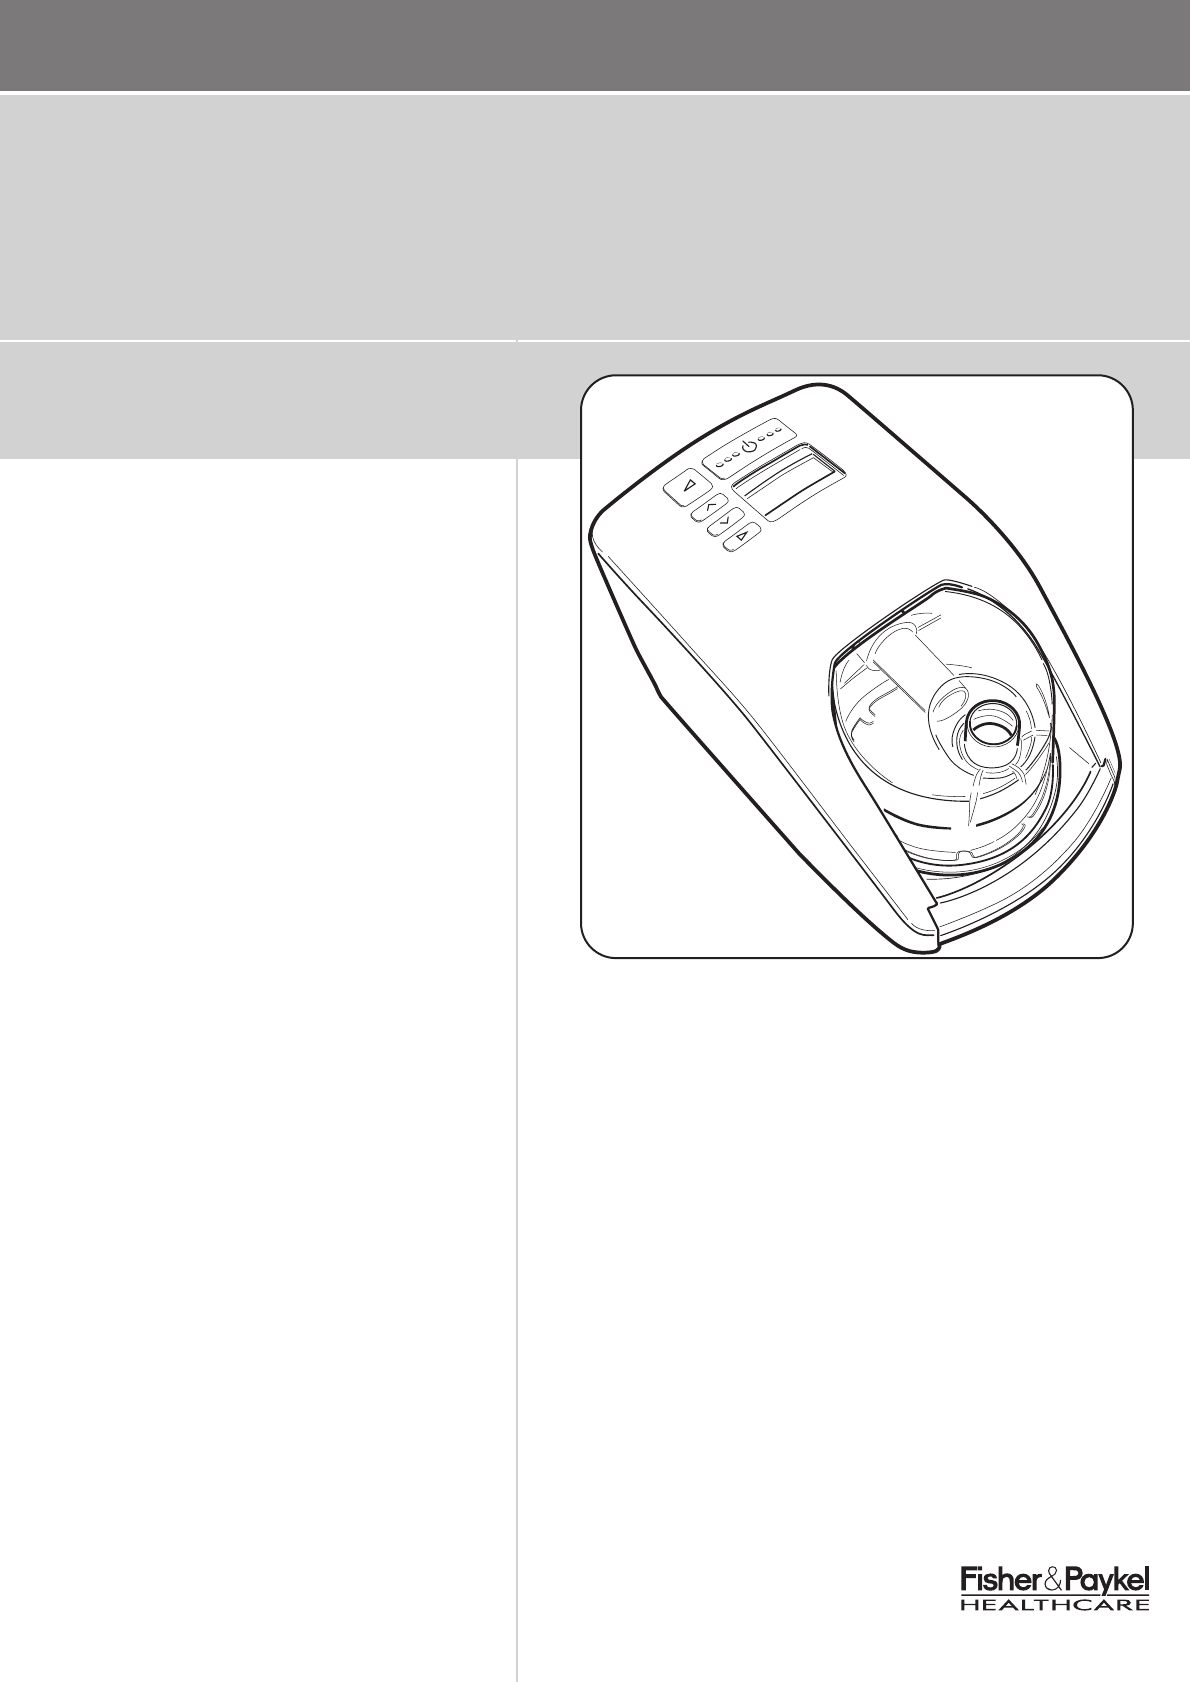 fisher and paykel cpap machine manual